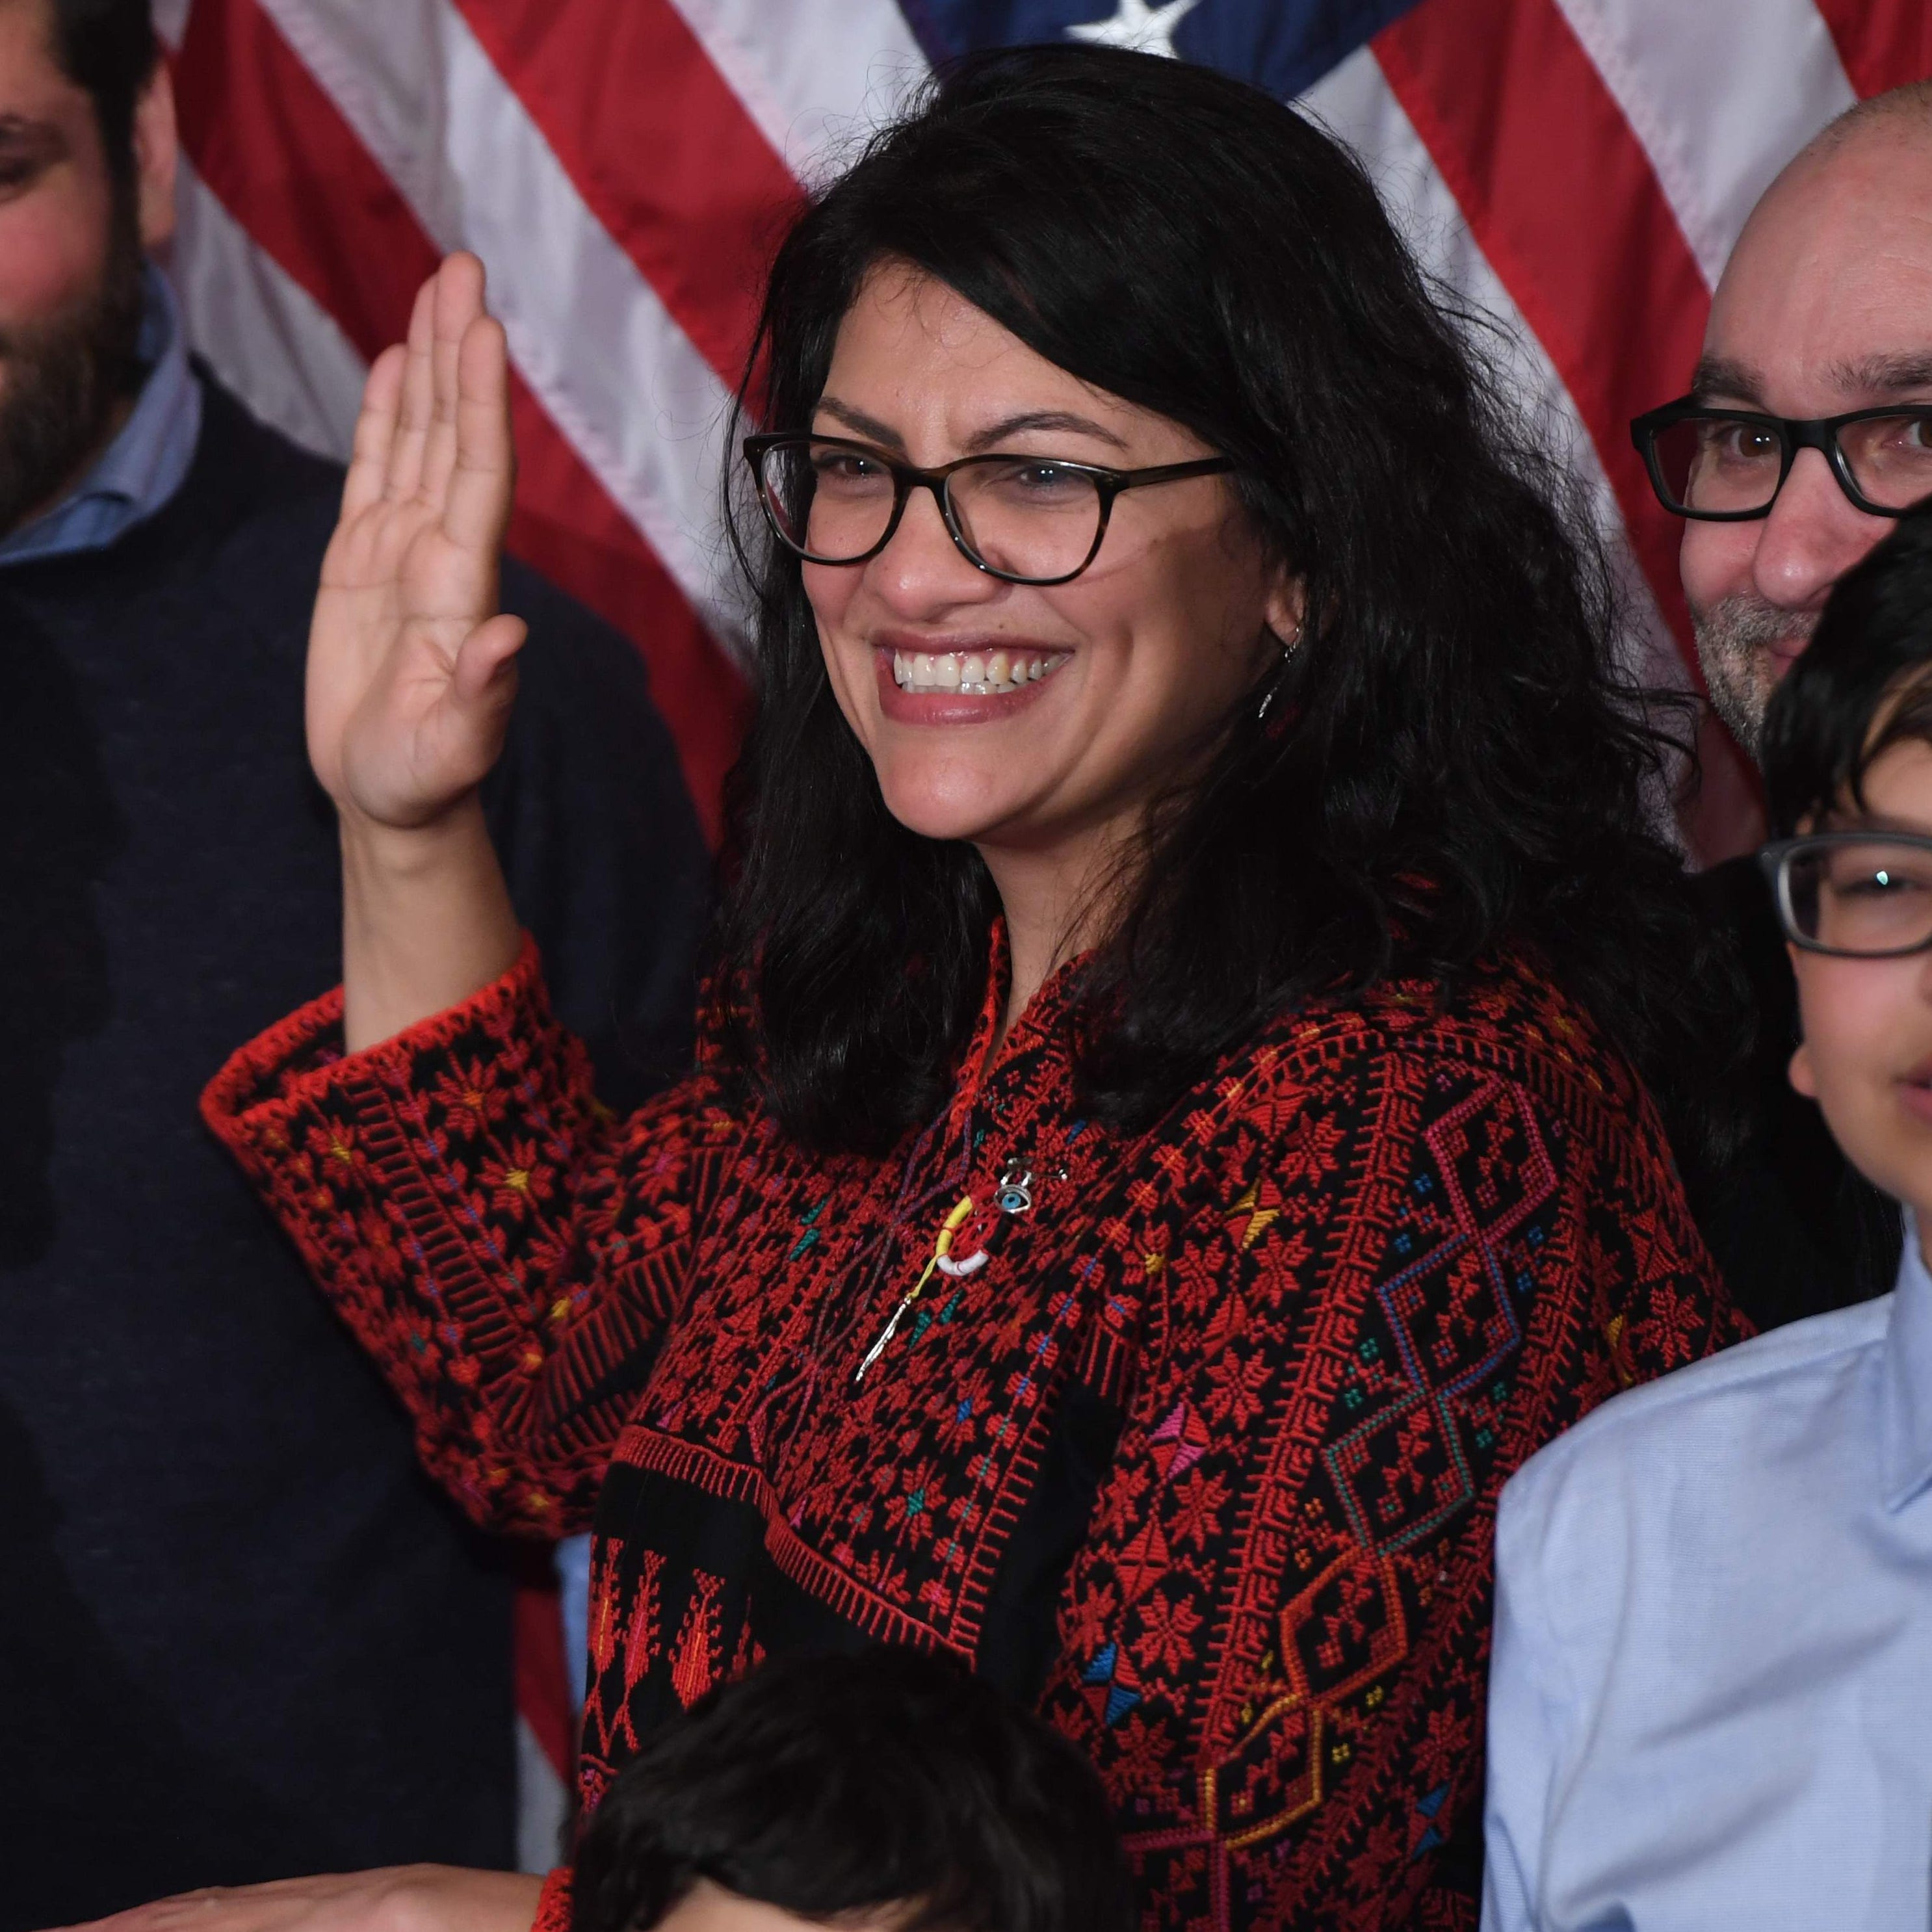 Fla. official says Tlaib might 'blow up Capitol Hill'